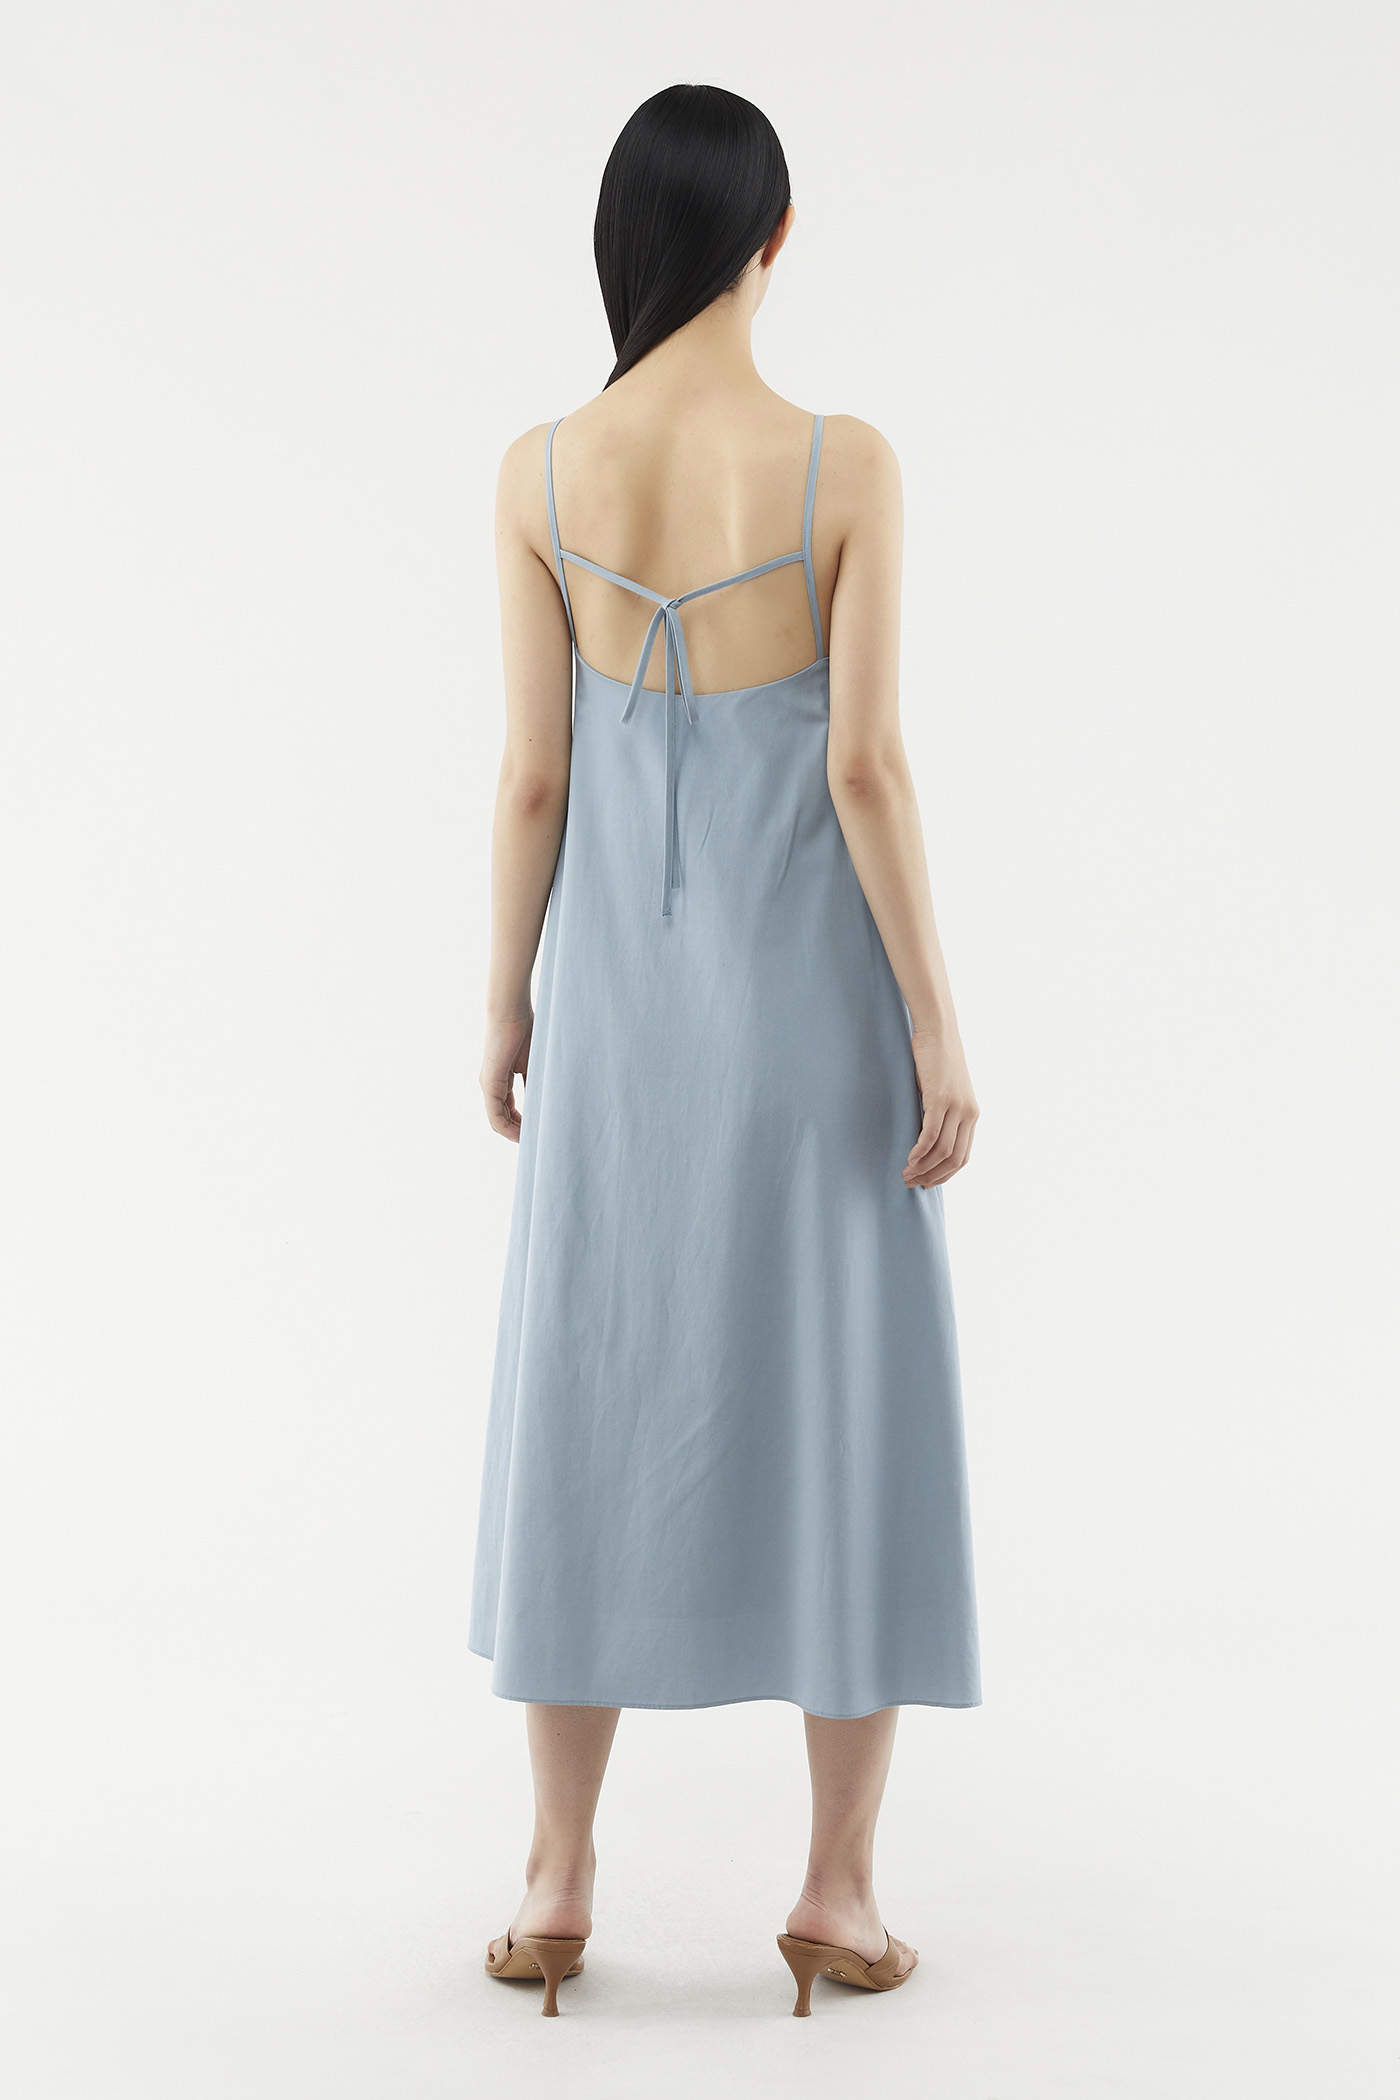 Lauree Back-tie Dress